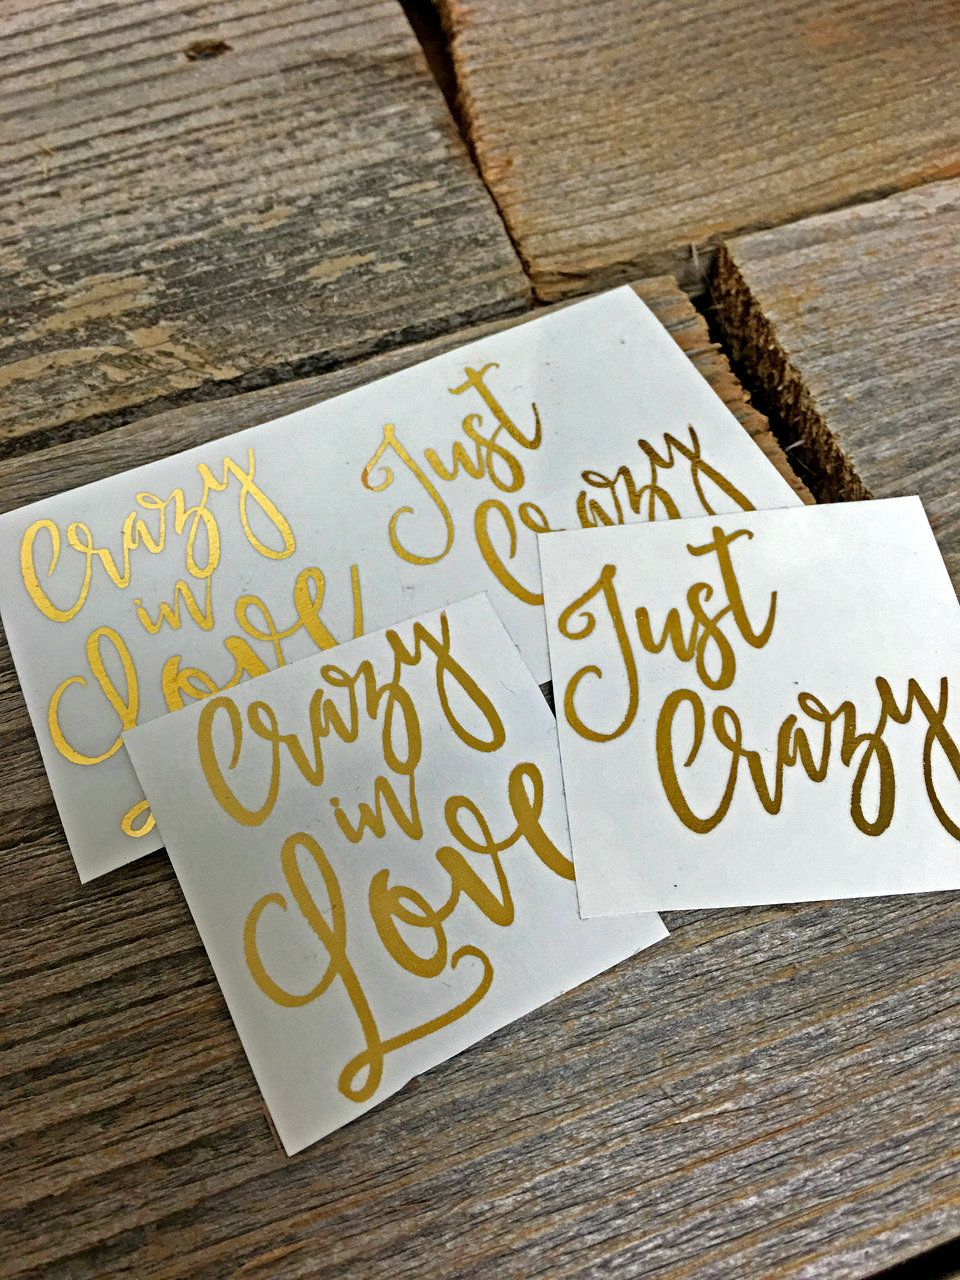 Crazy in Love - Just Crazy - Temporary Tattoos  Sparkle everywhere! You and your bridal party will shine with pride and these tantalizing tattoos. Marriage is forever, but these tattoos are just for the celebrations! Get all your girls glowing!